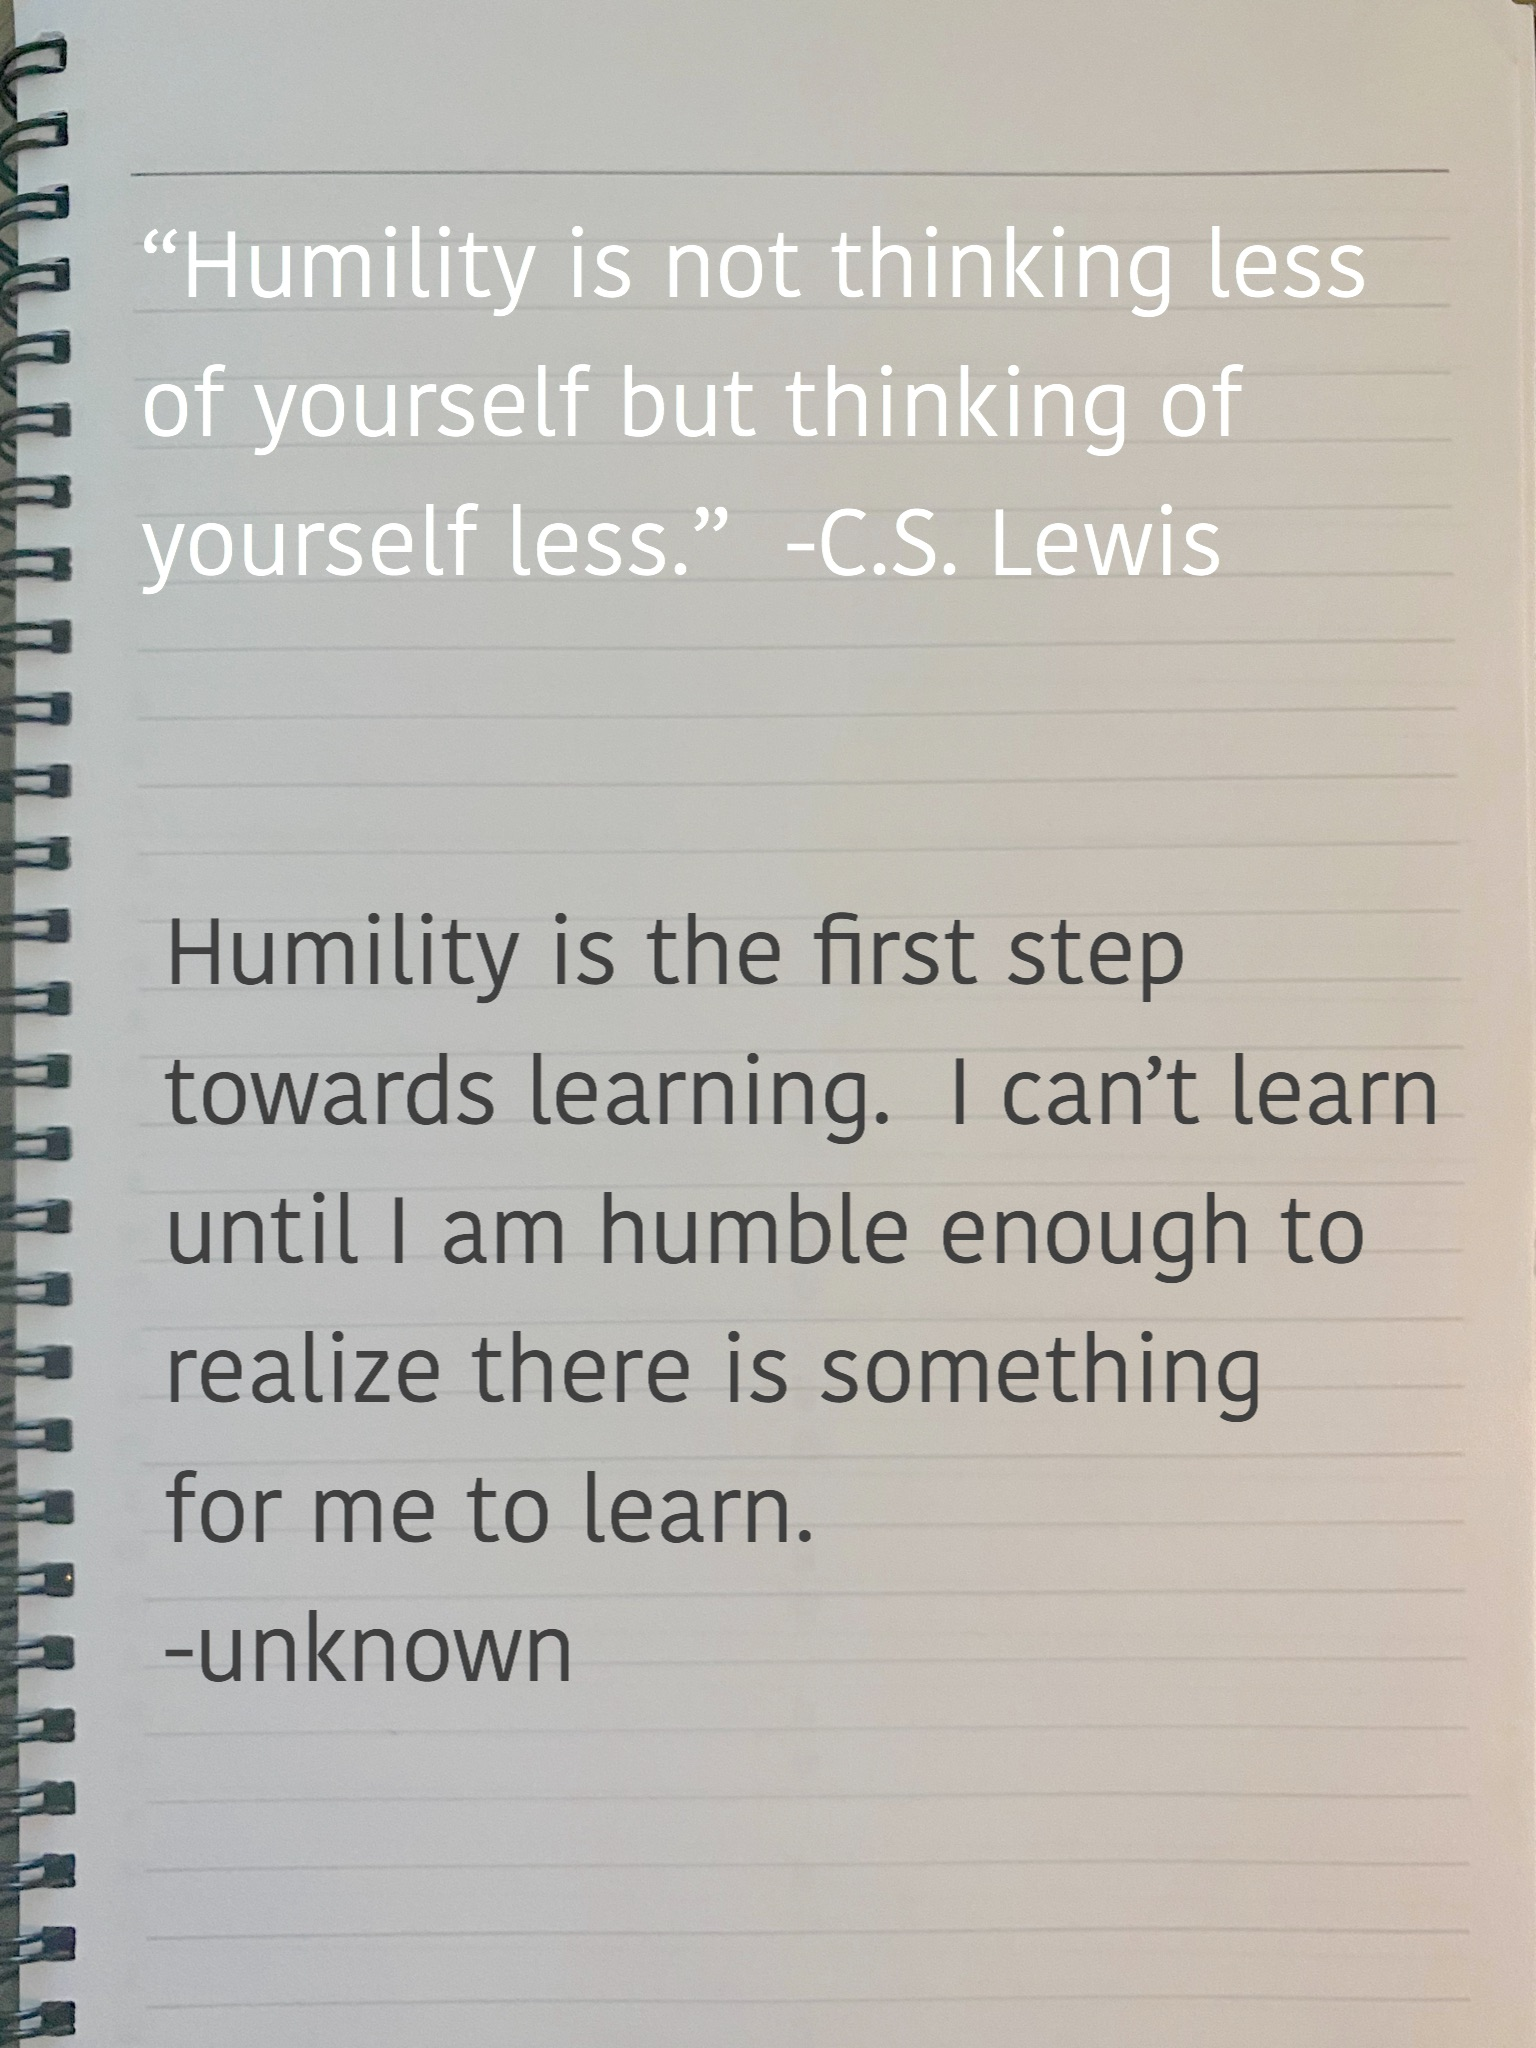 "Humility is not thinking less of yourself but thinking of yourself less."" -C.S. Lewis"